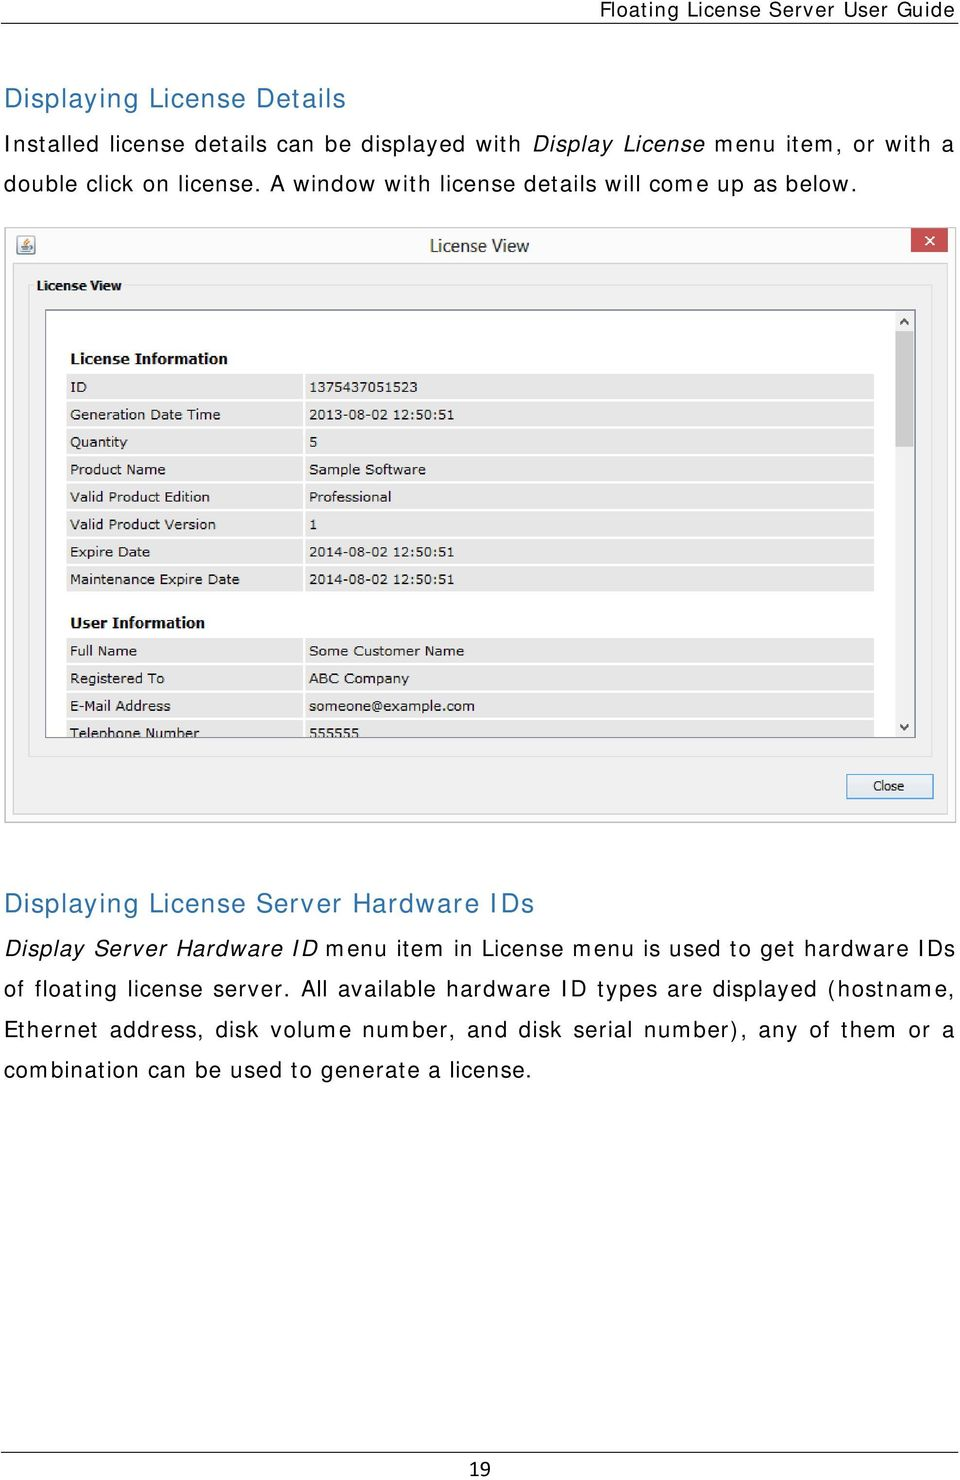 LICENSE4J FLOATING LICENSE SERVER USER GUIDE - PDF